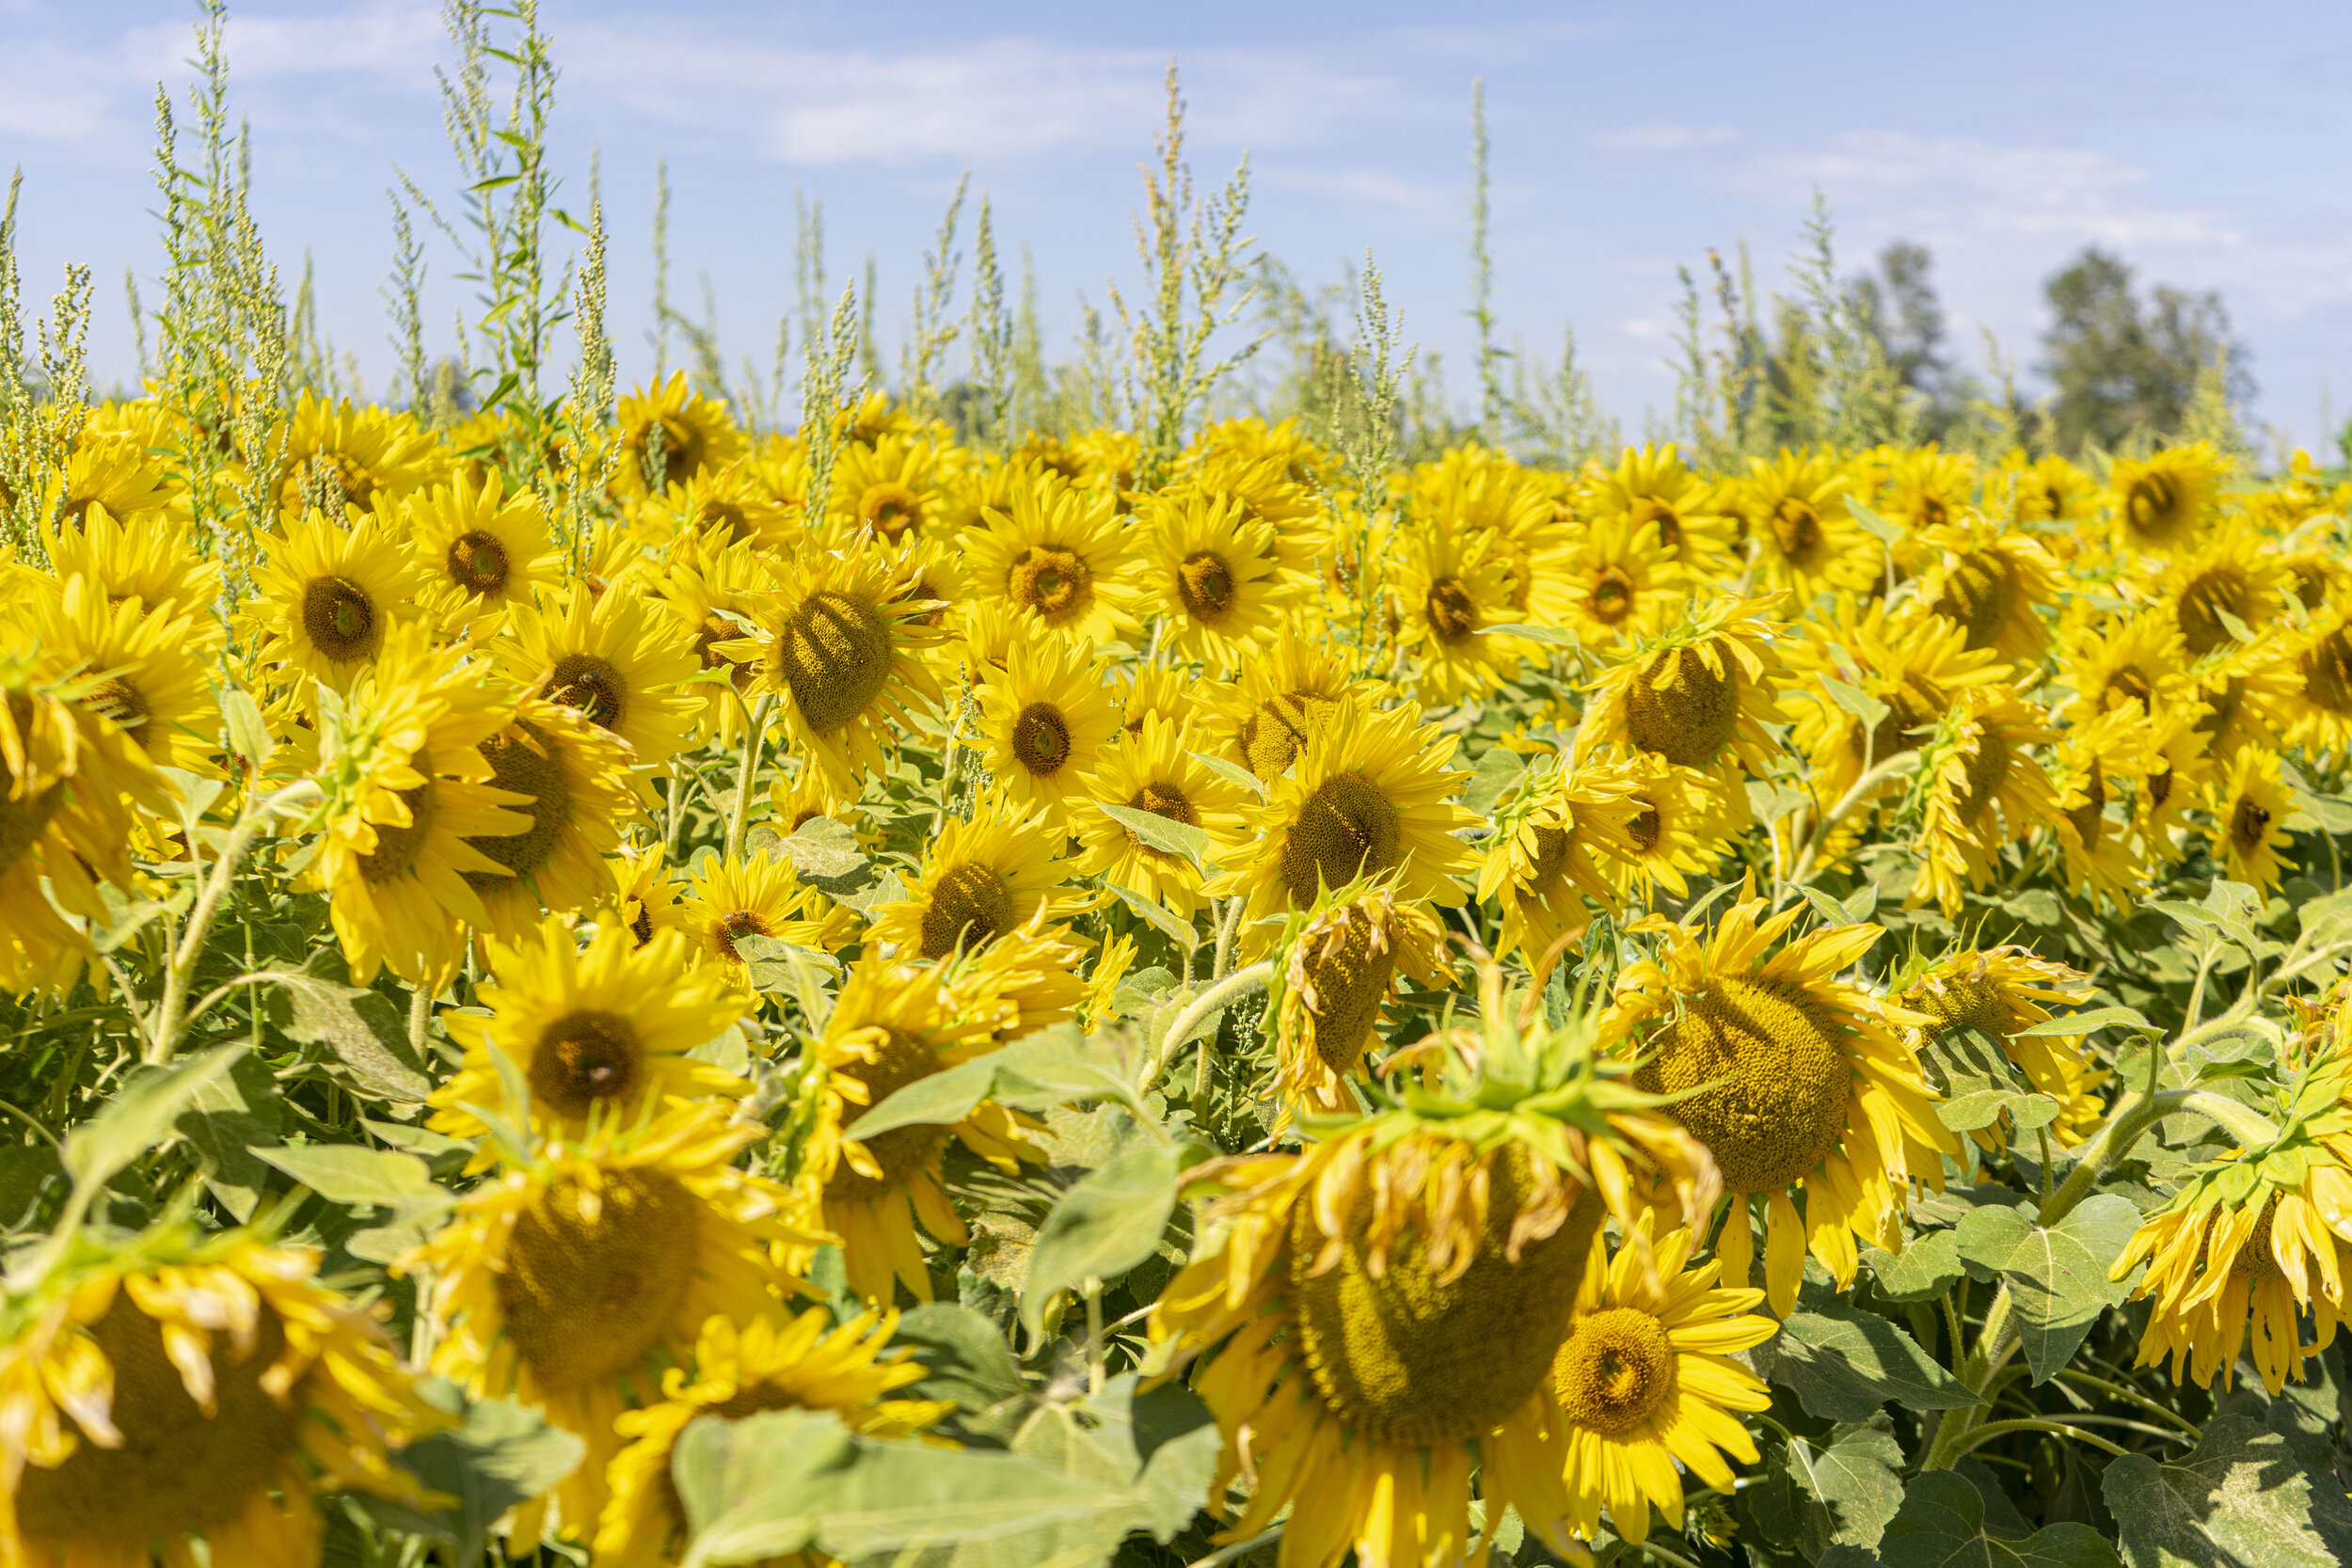 Willow Bar Farm provides ample amounts of forage for their local pollinators.